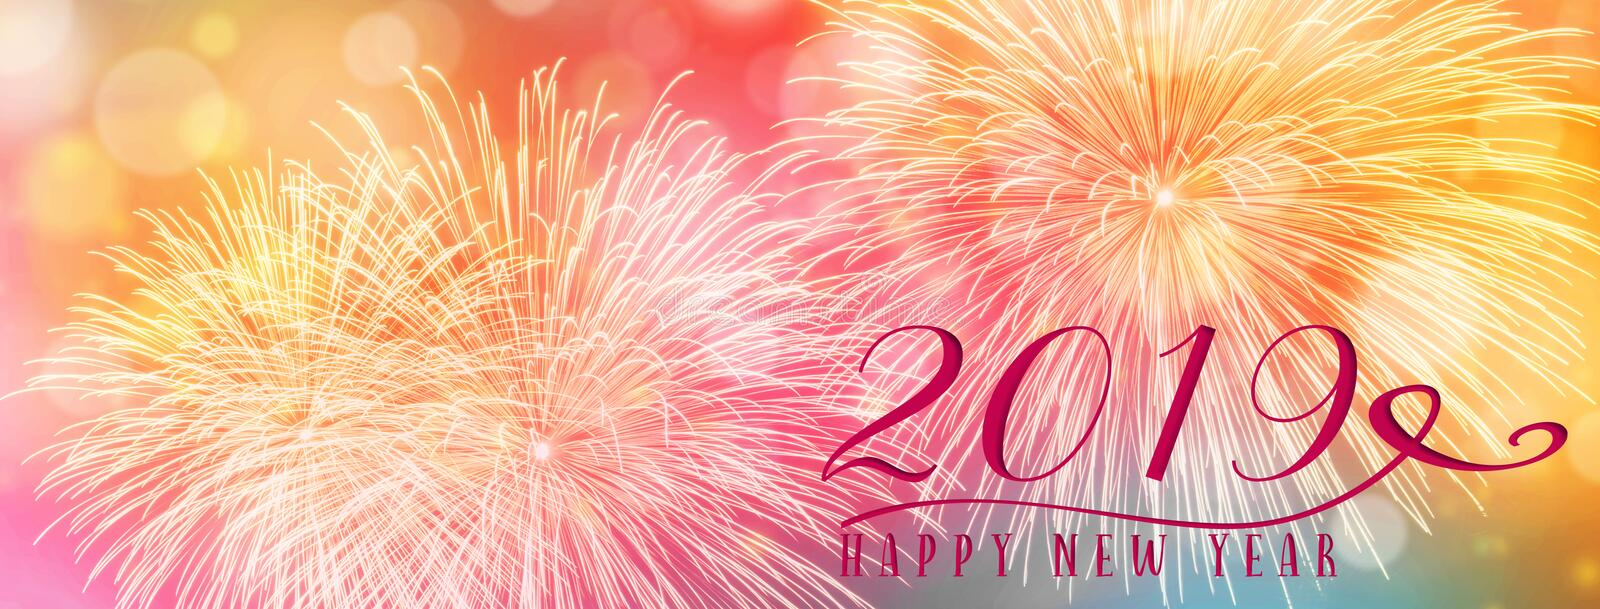 New Year Holiday background banner with fireworks and seasonal quote. stock photo